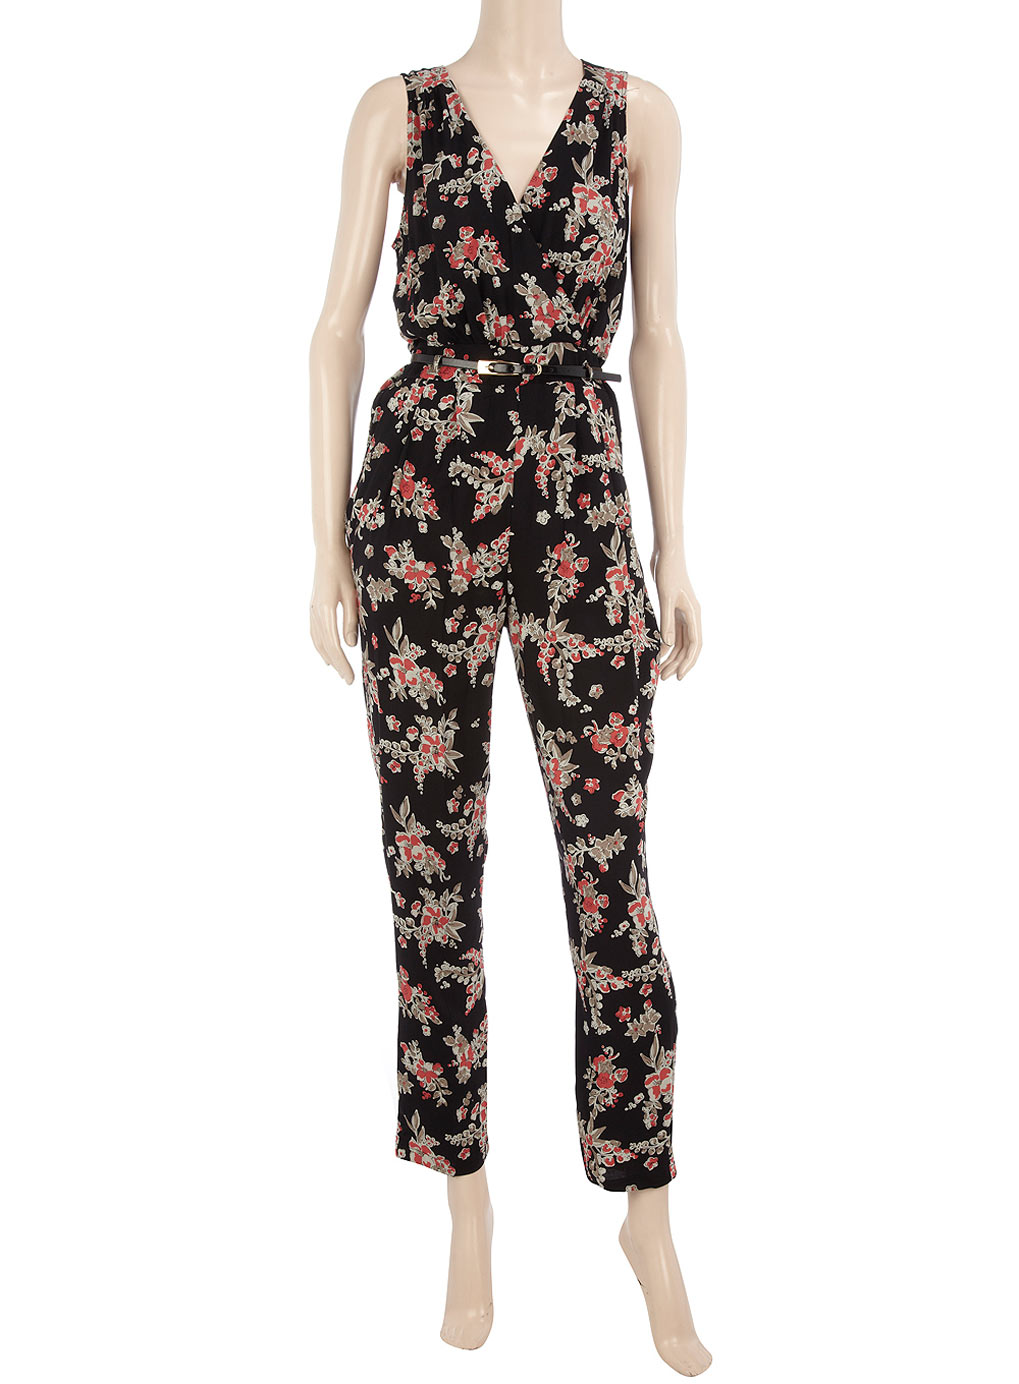 Dorothy Perkins £31.50 Ditsy Floral Jumpsuit